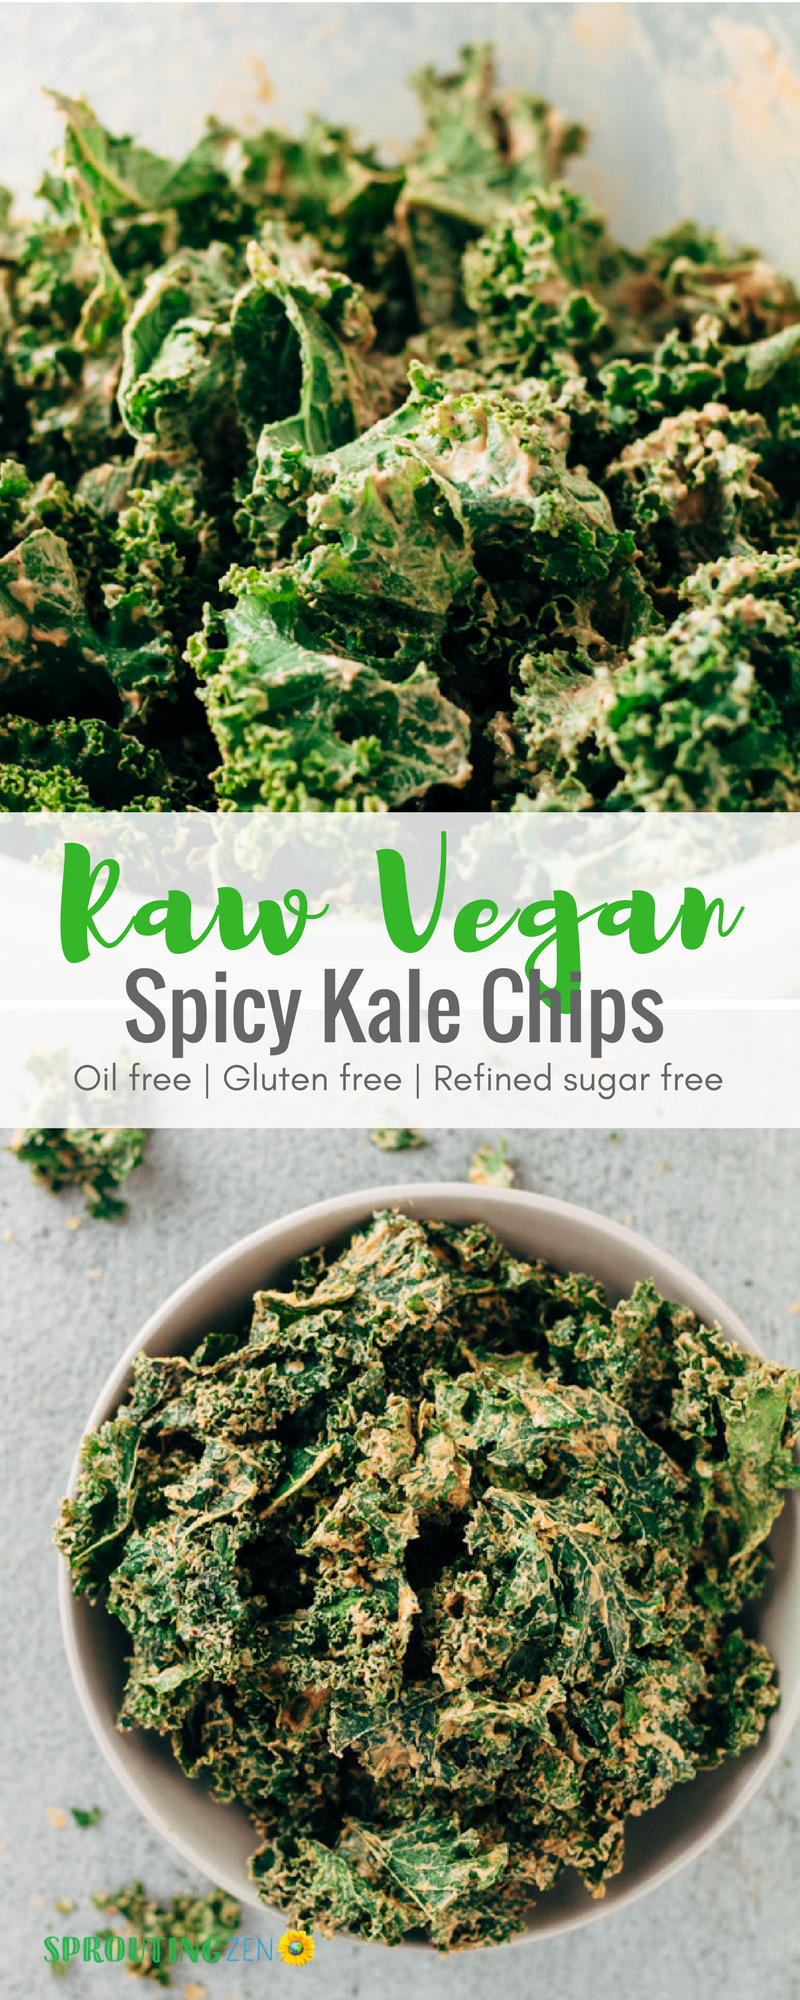 Dehydrated Raw Vegan Spicy Kale Chips #vegan #plantbased #veganfood #kalechips